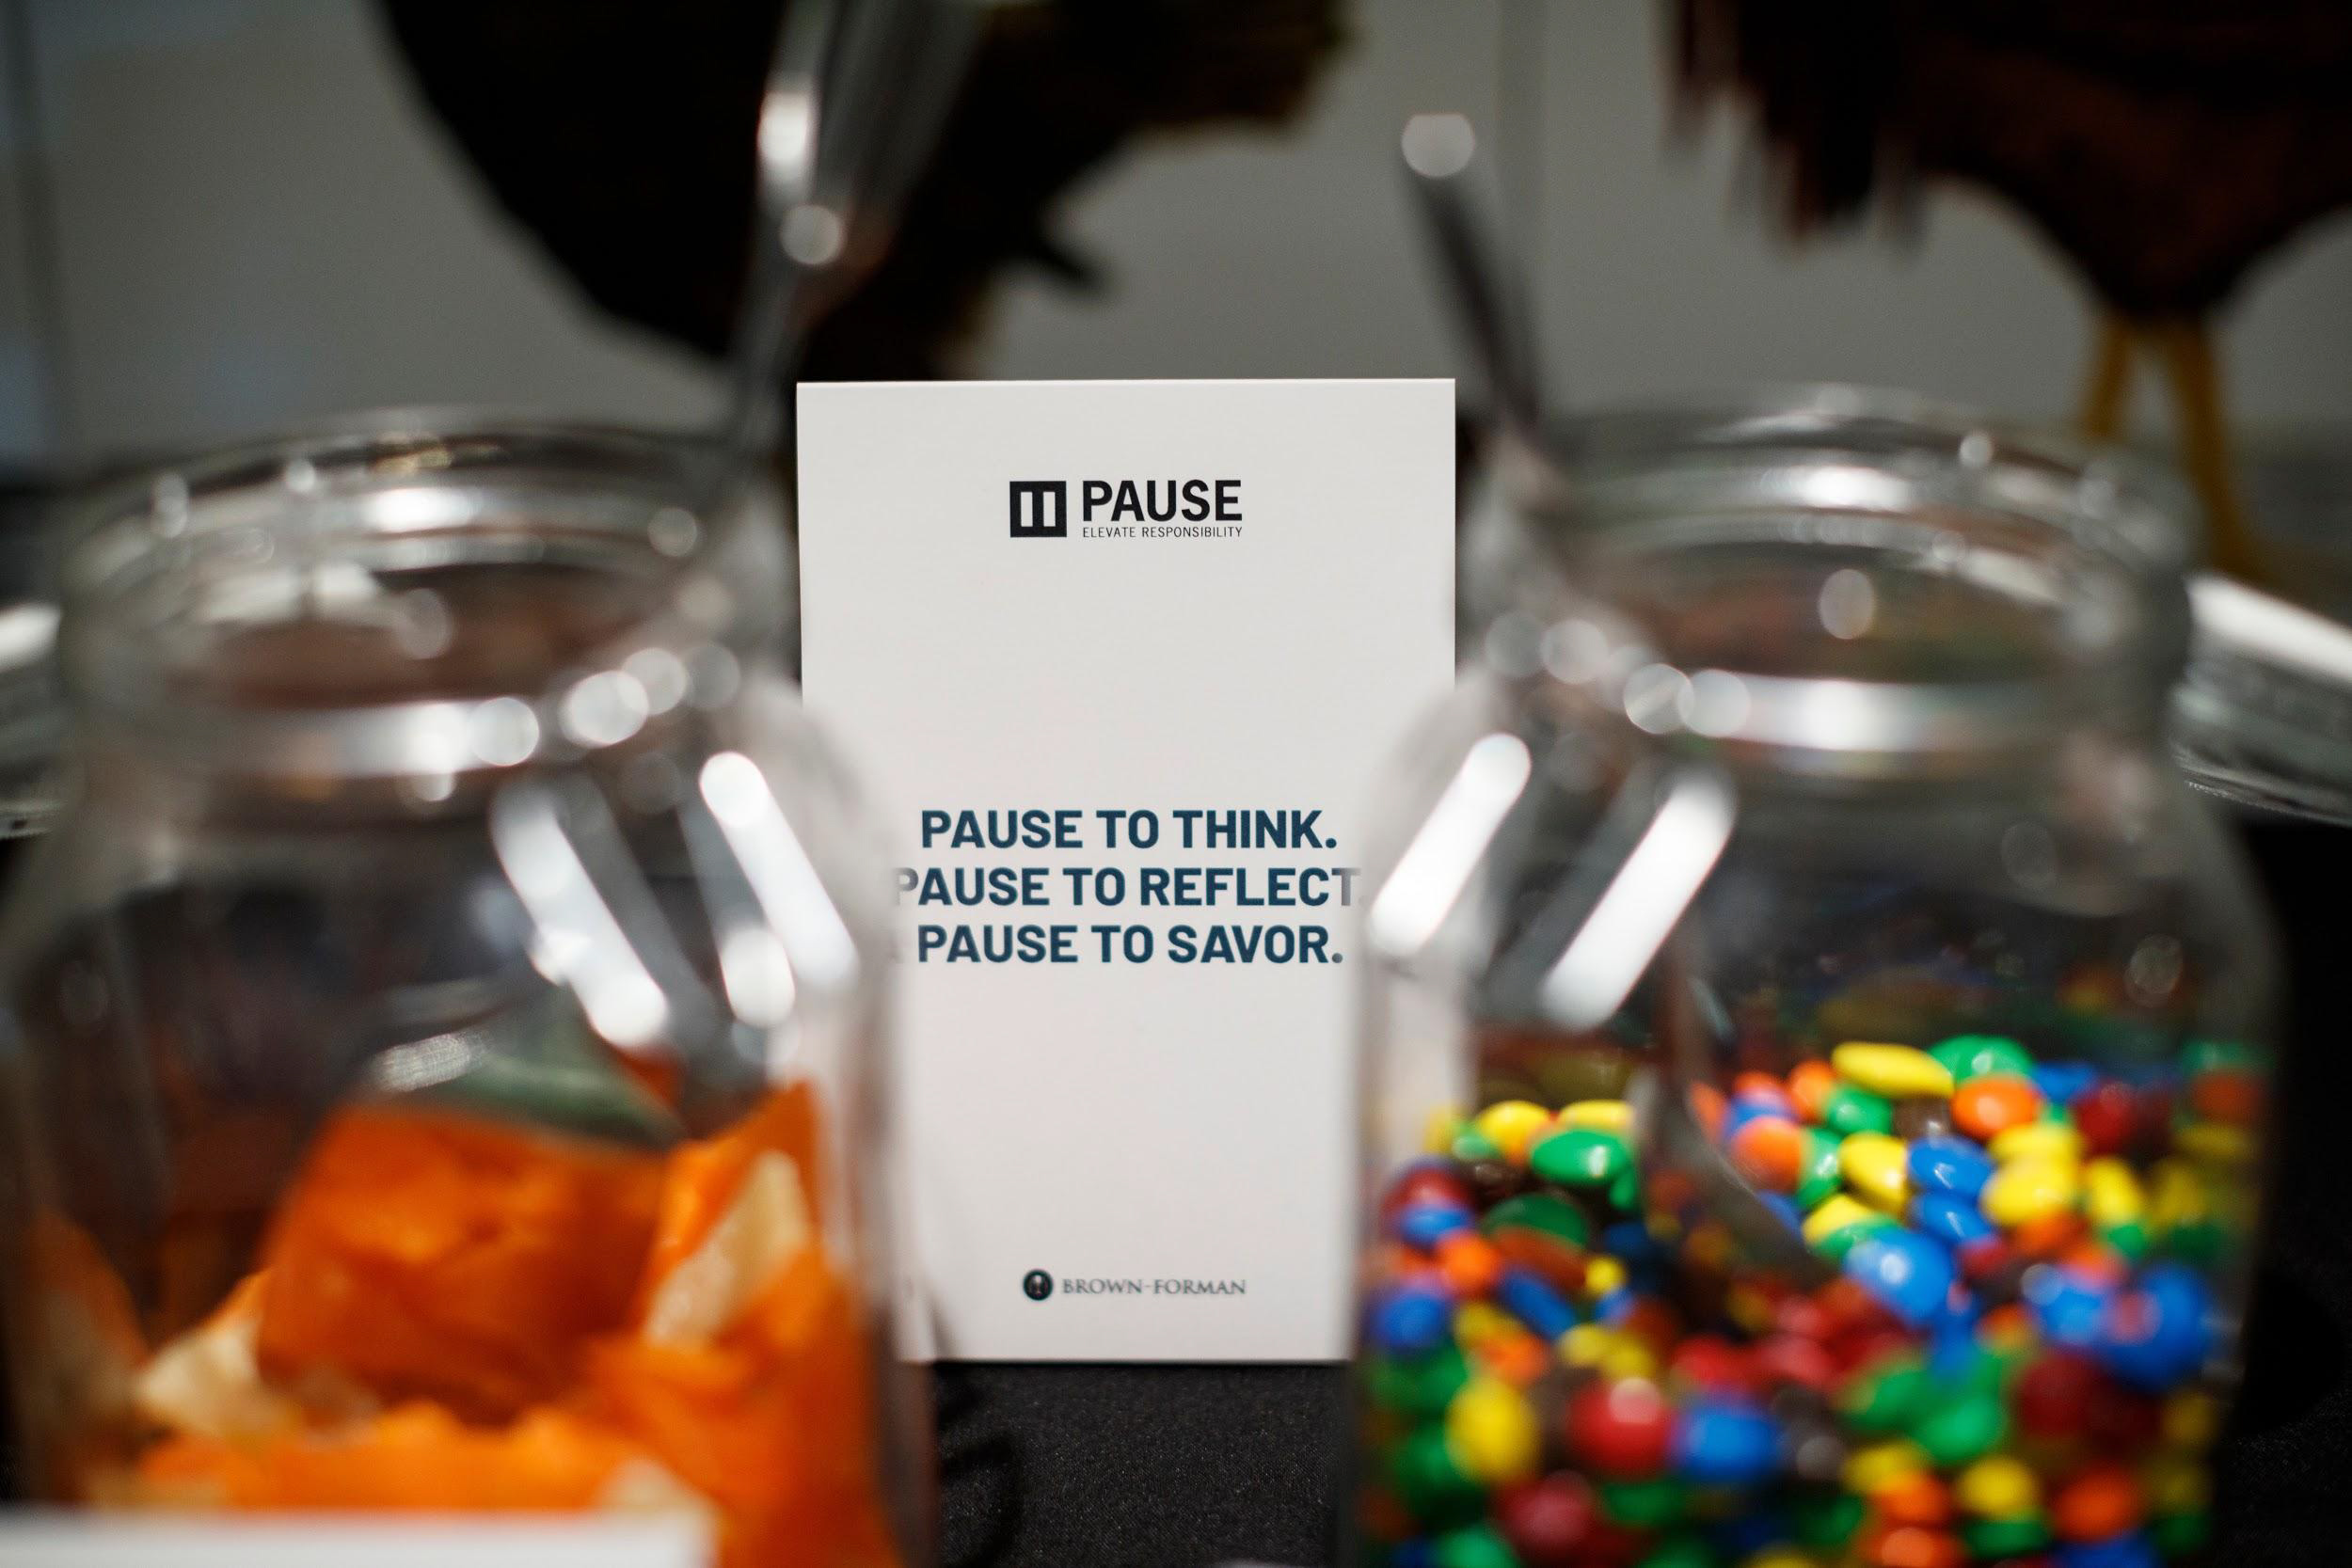 PAUSE events